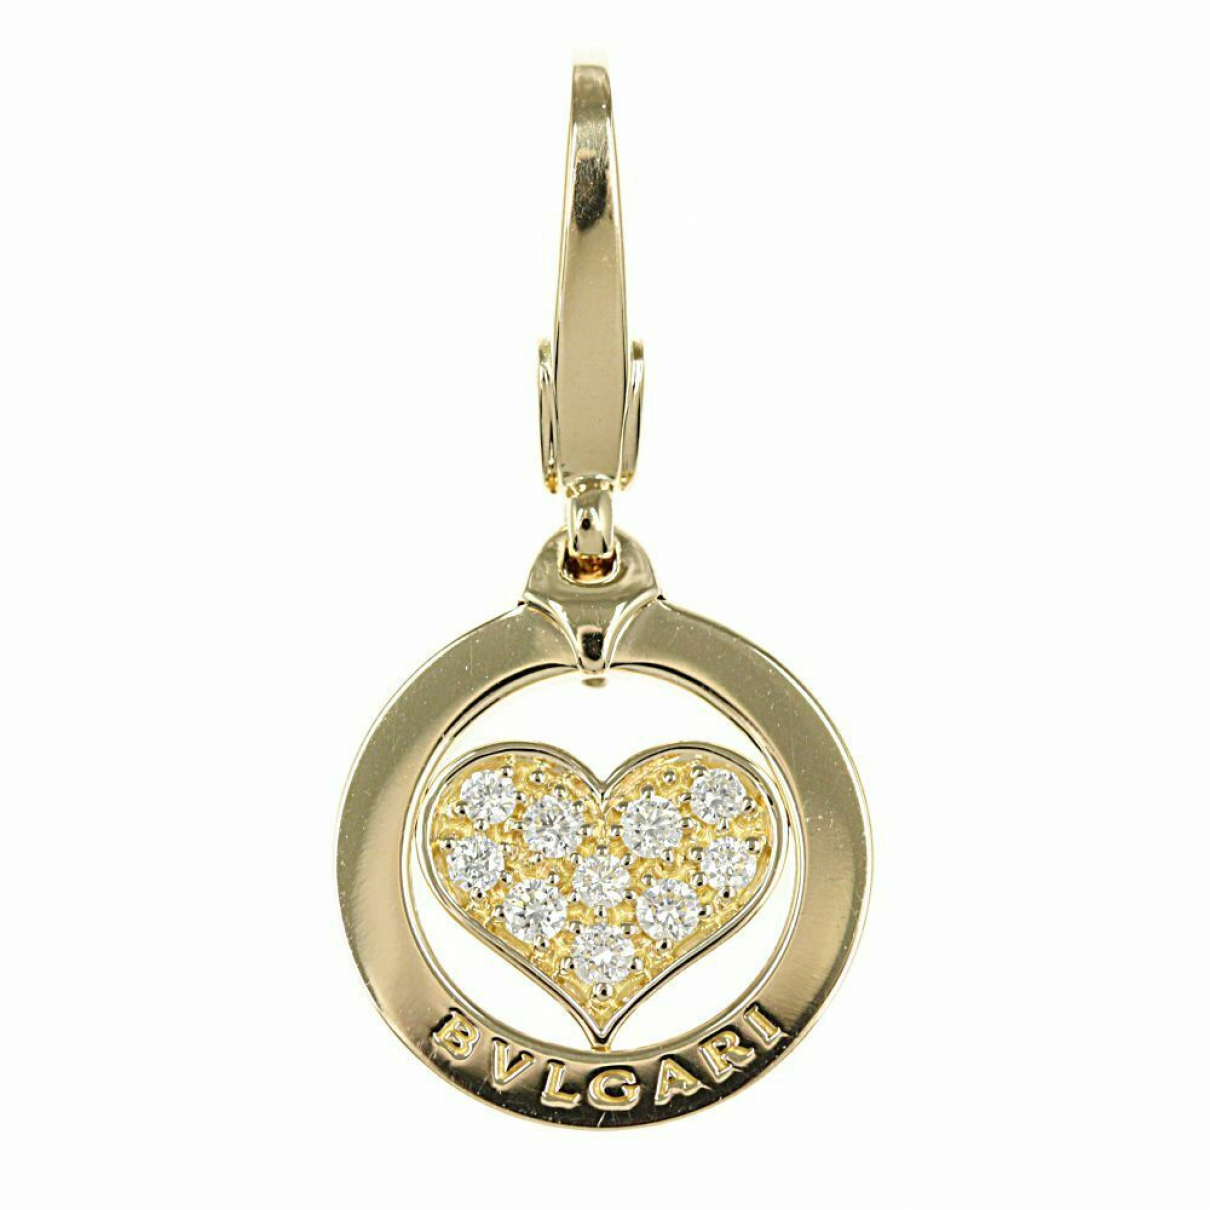 Bvlgari \N Yellow gold necklace for Women \N